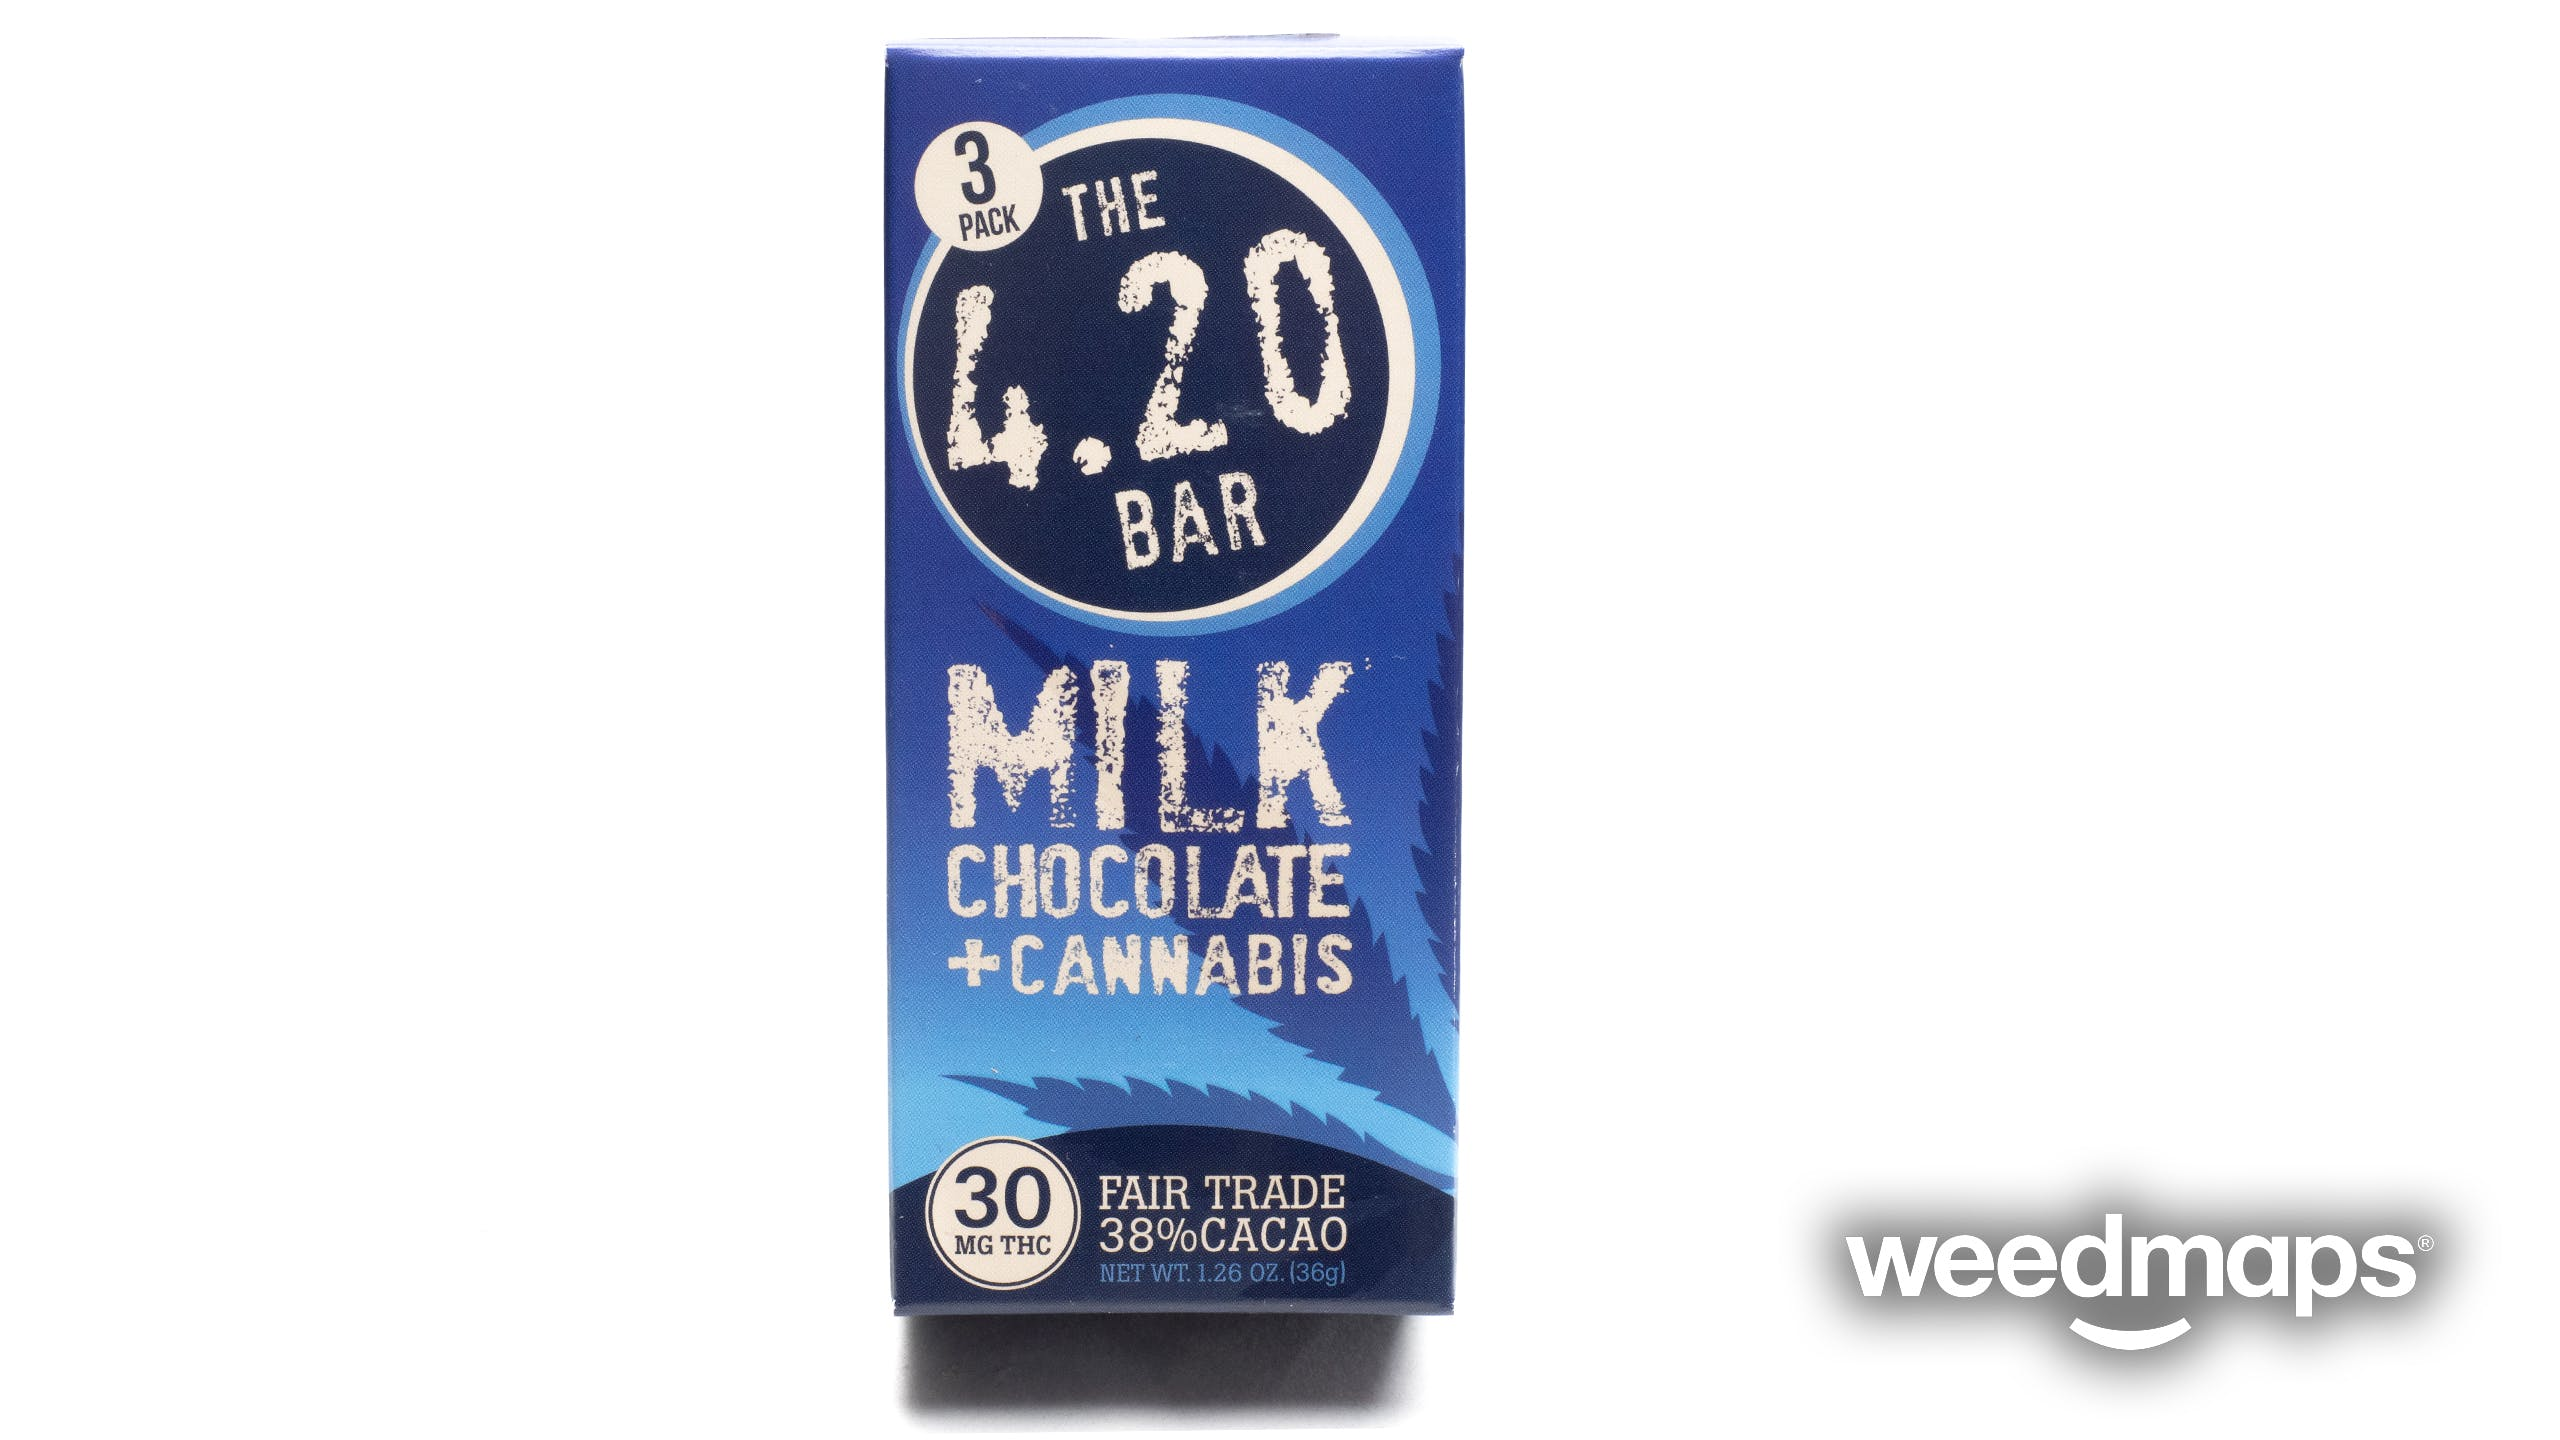 edible-420-chocolate-bar-10mg